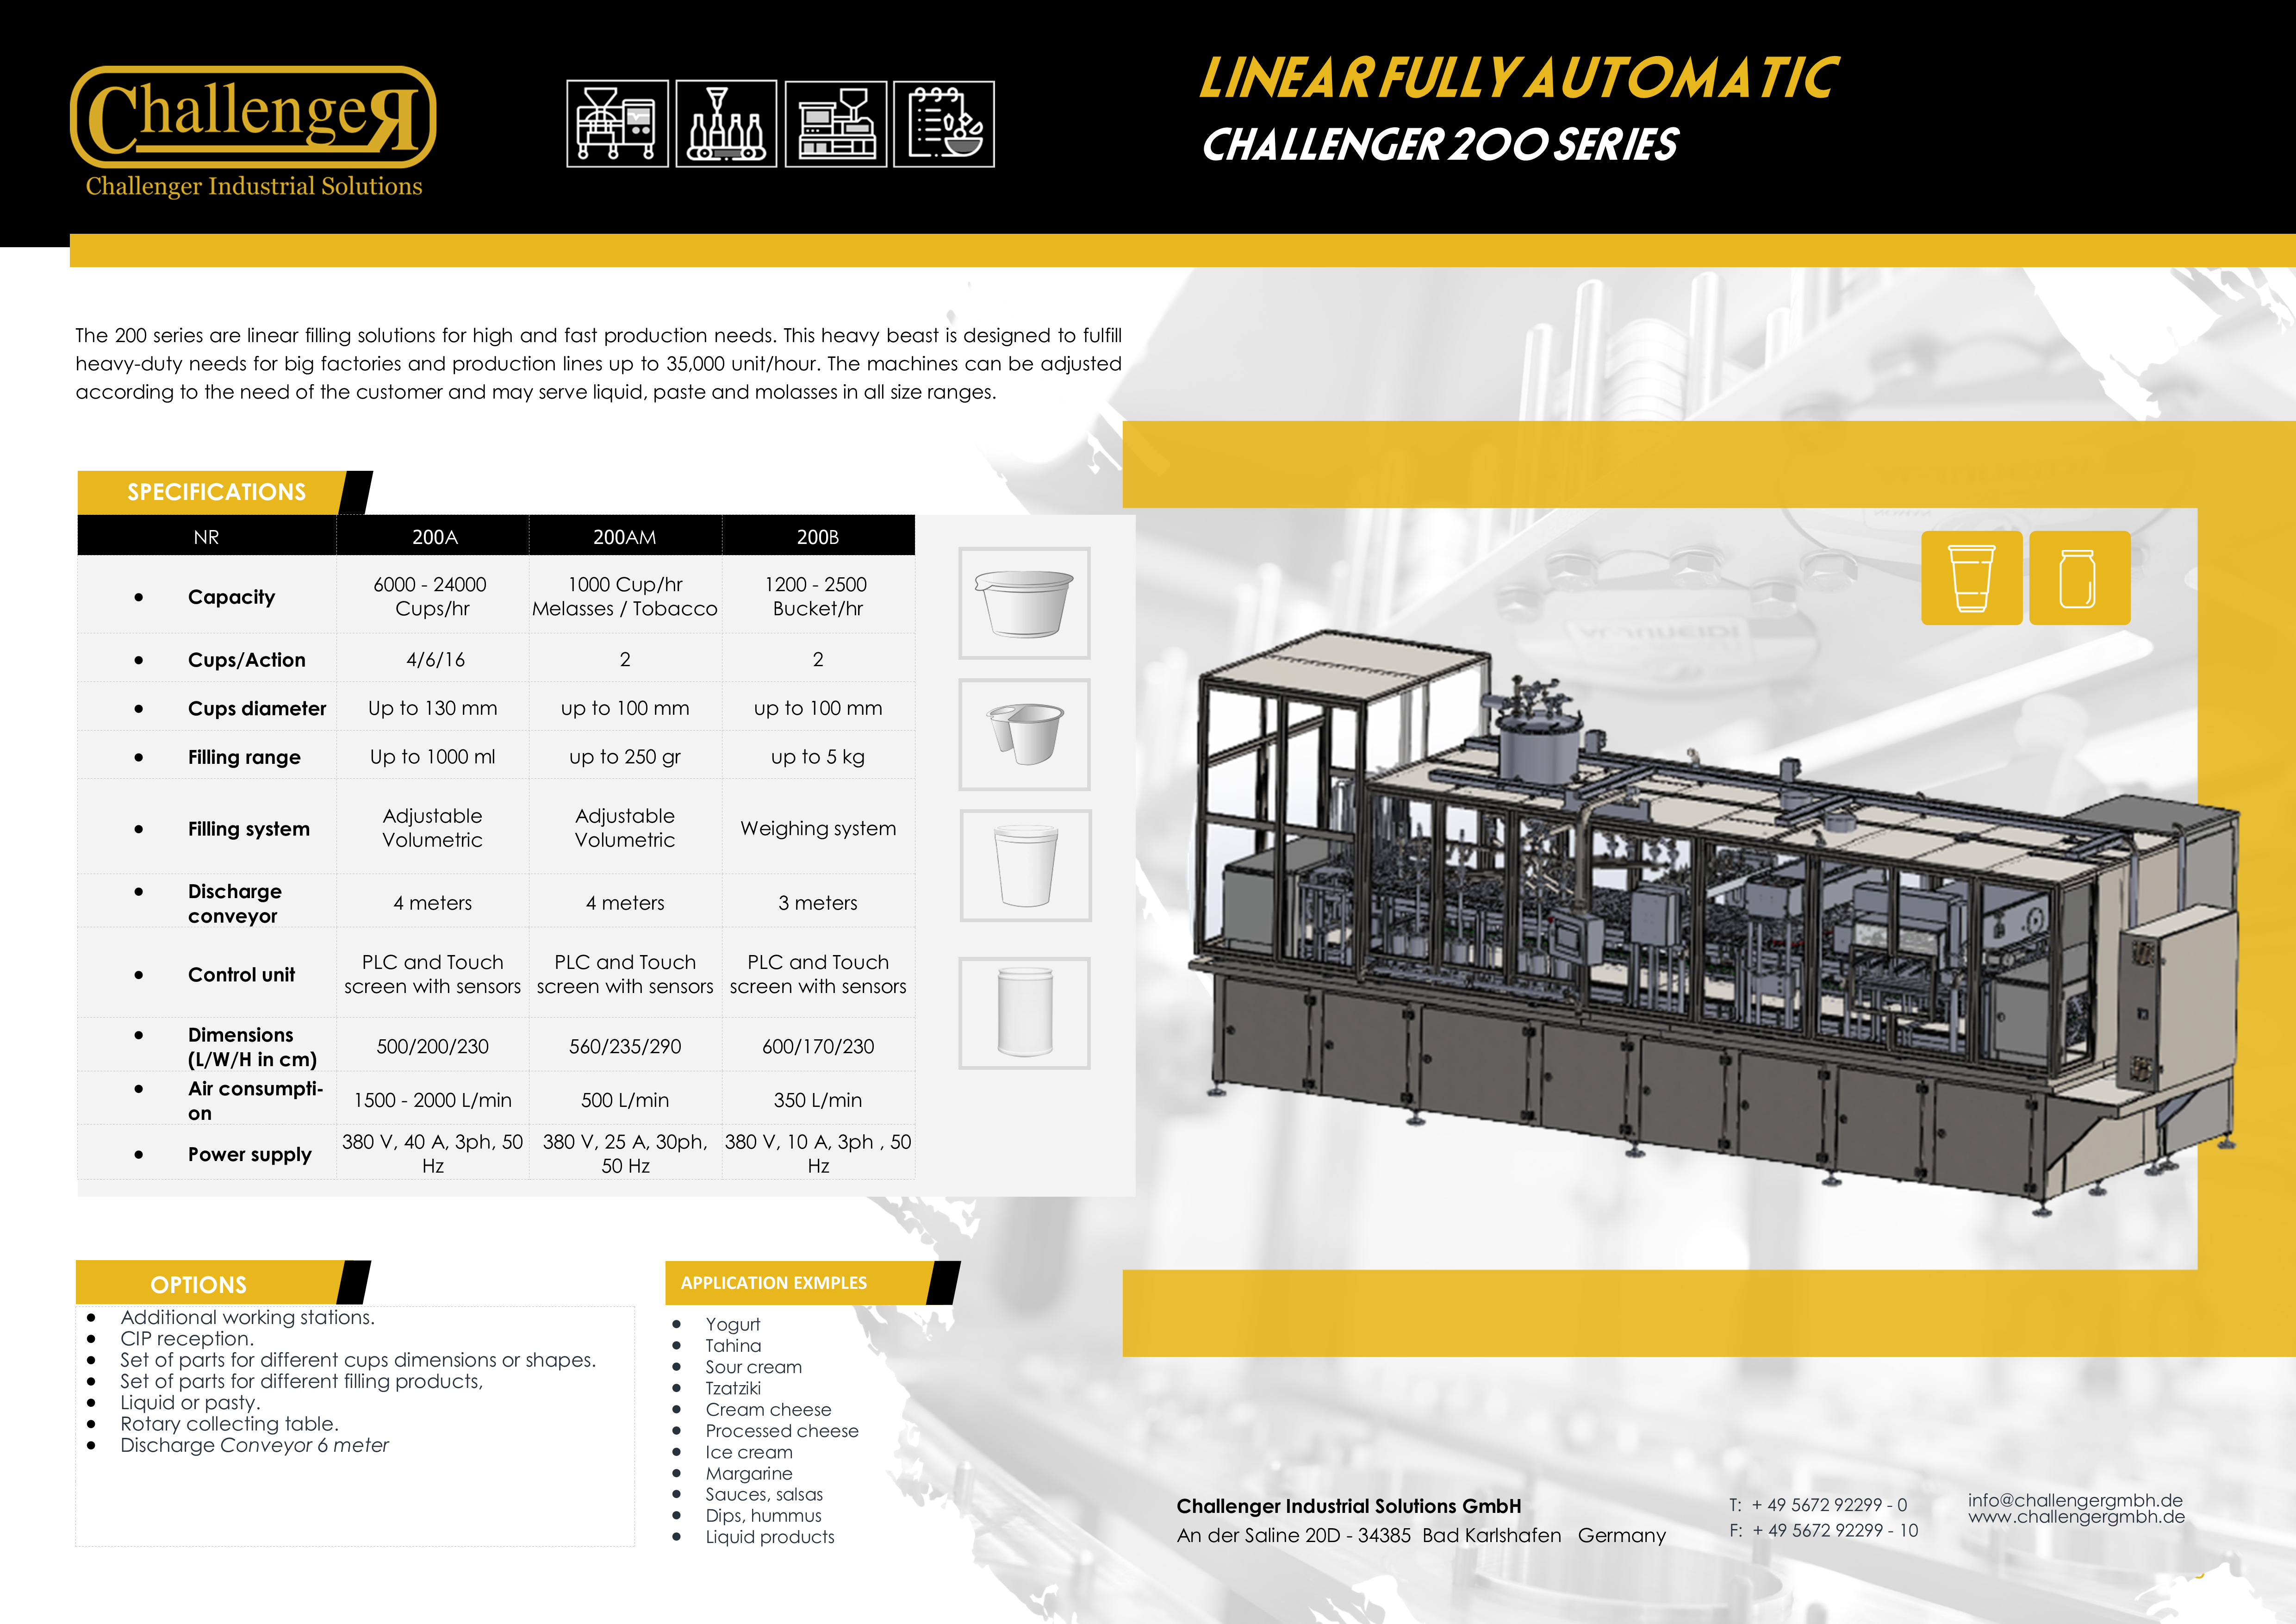 LINEAR FULLY AUTOMATIC one page